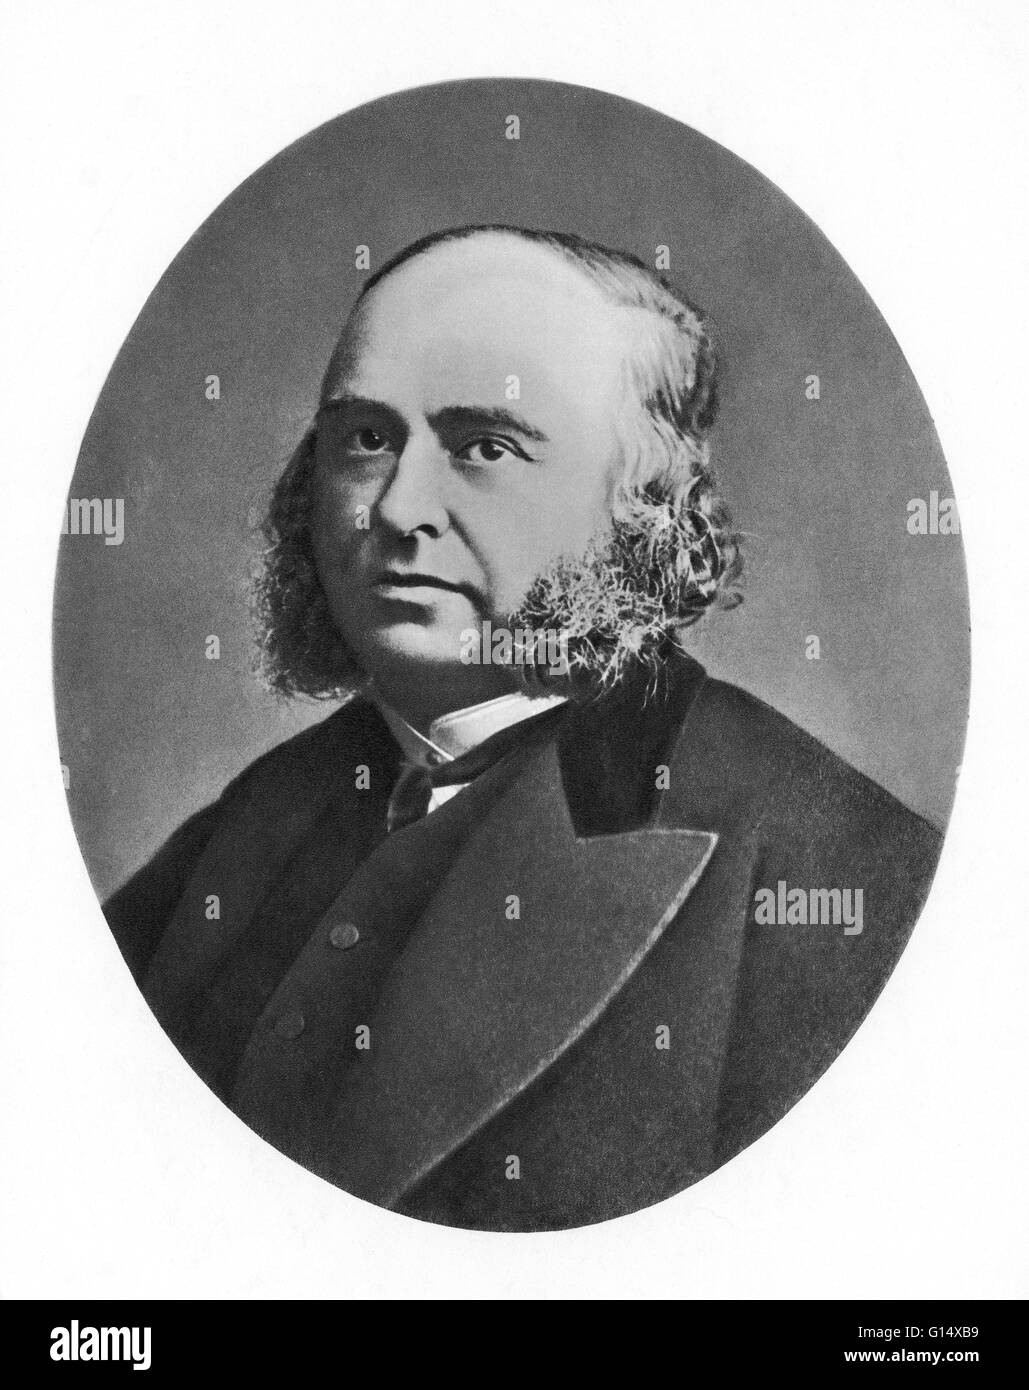 Pierre Paul Broca (1824-1880) was a French physician, surgeon, anatomist and anthropologist. He is best known for Stock Photo